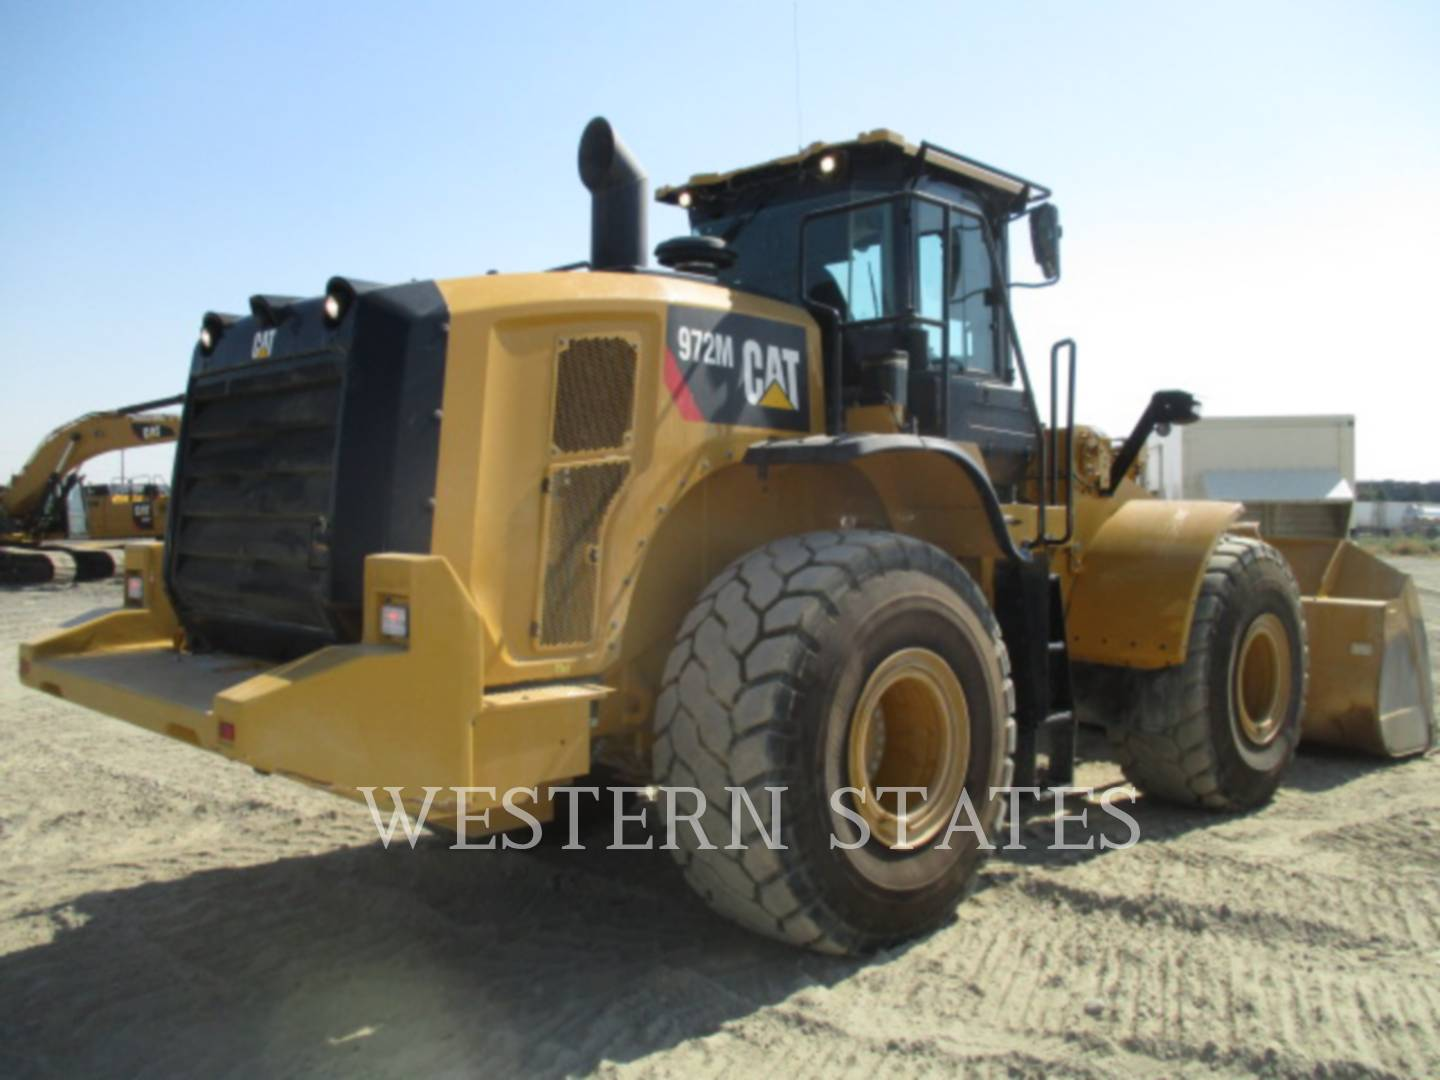 2016 CATERPILLAR 972M image3